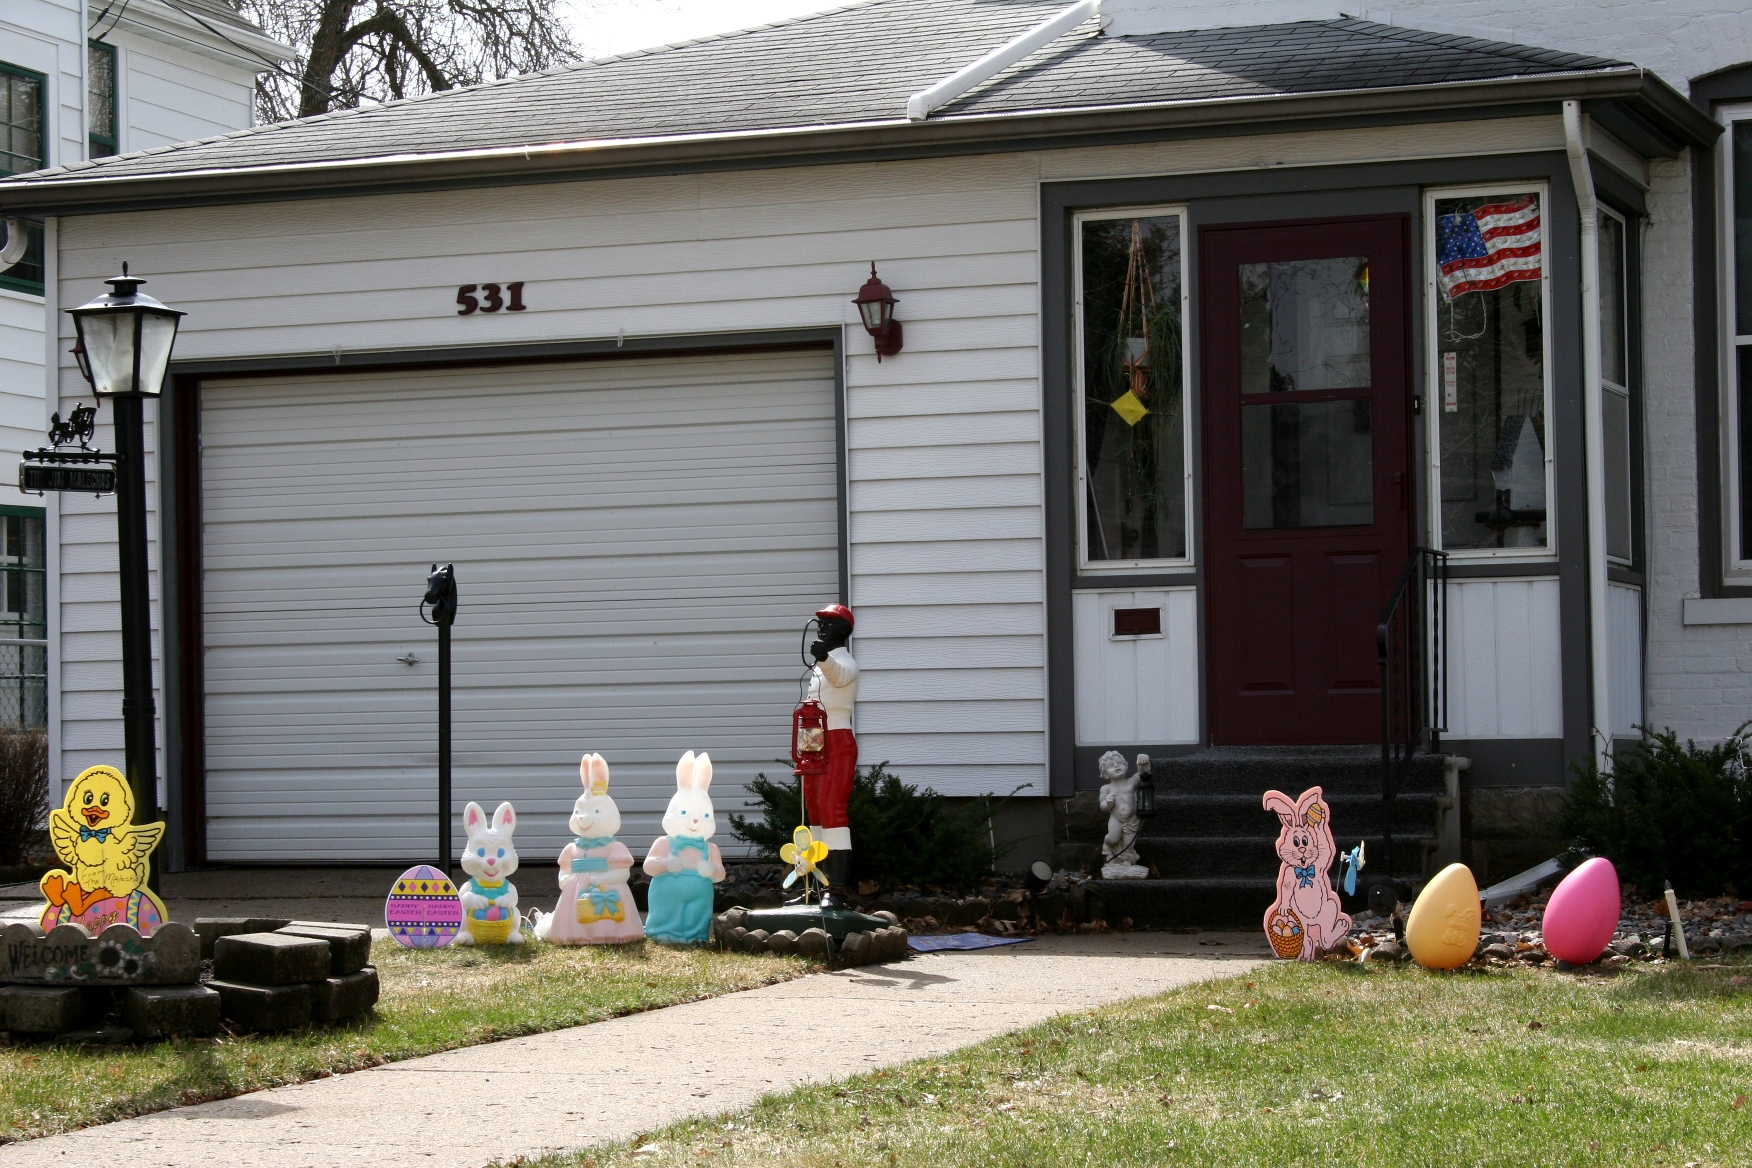 Outdoor easter decorations - More Easter Decorations In That Faribault Front Yard